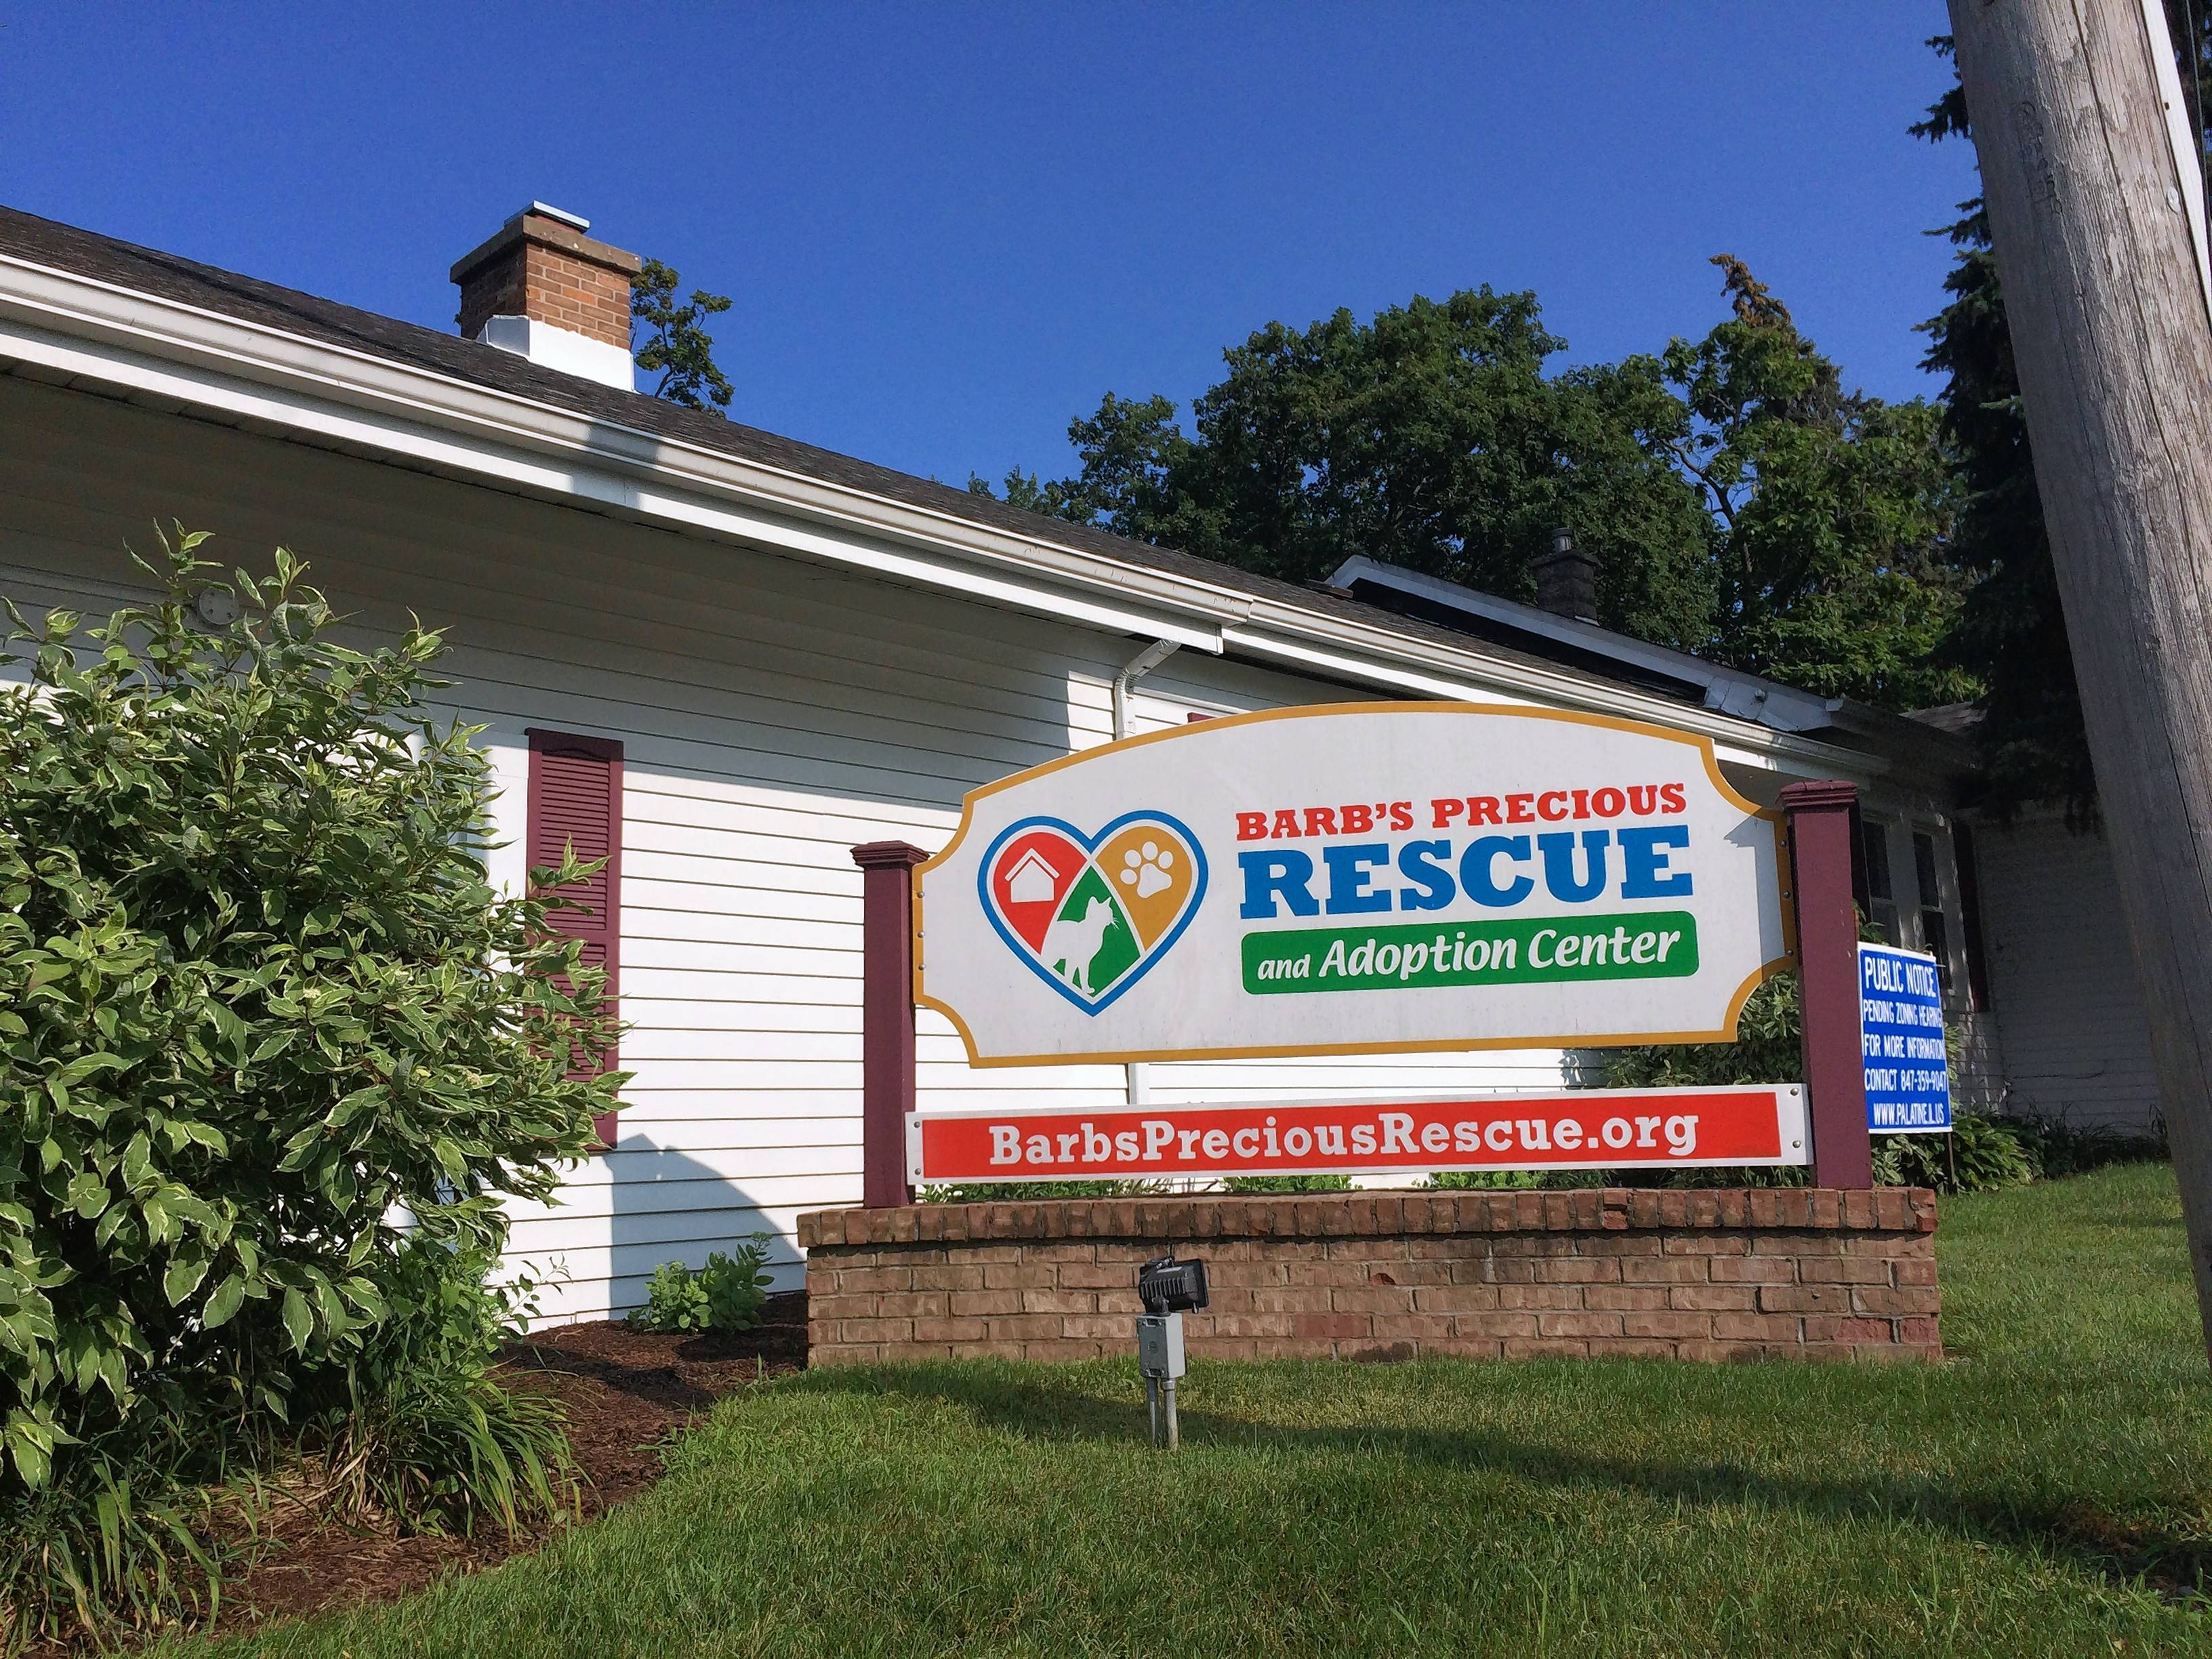 Palatine village council members have approved a plan for construction of an addition at Barb's Precious Rescue and Adoption Center, 313 N. Quentin Road.